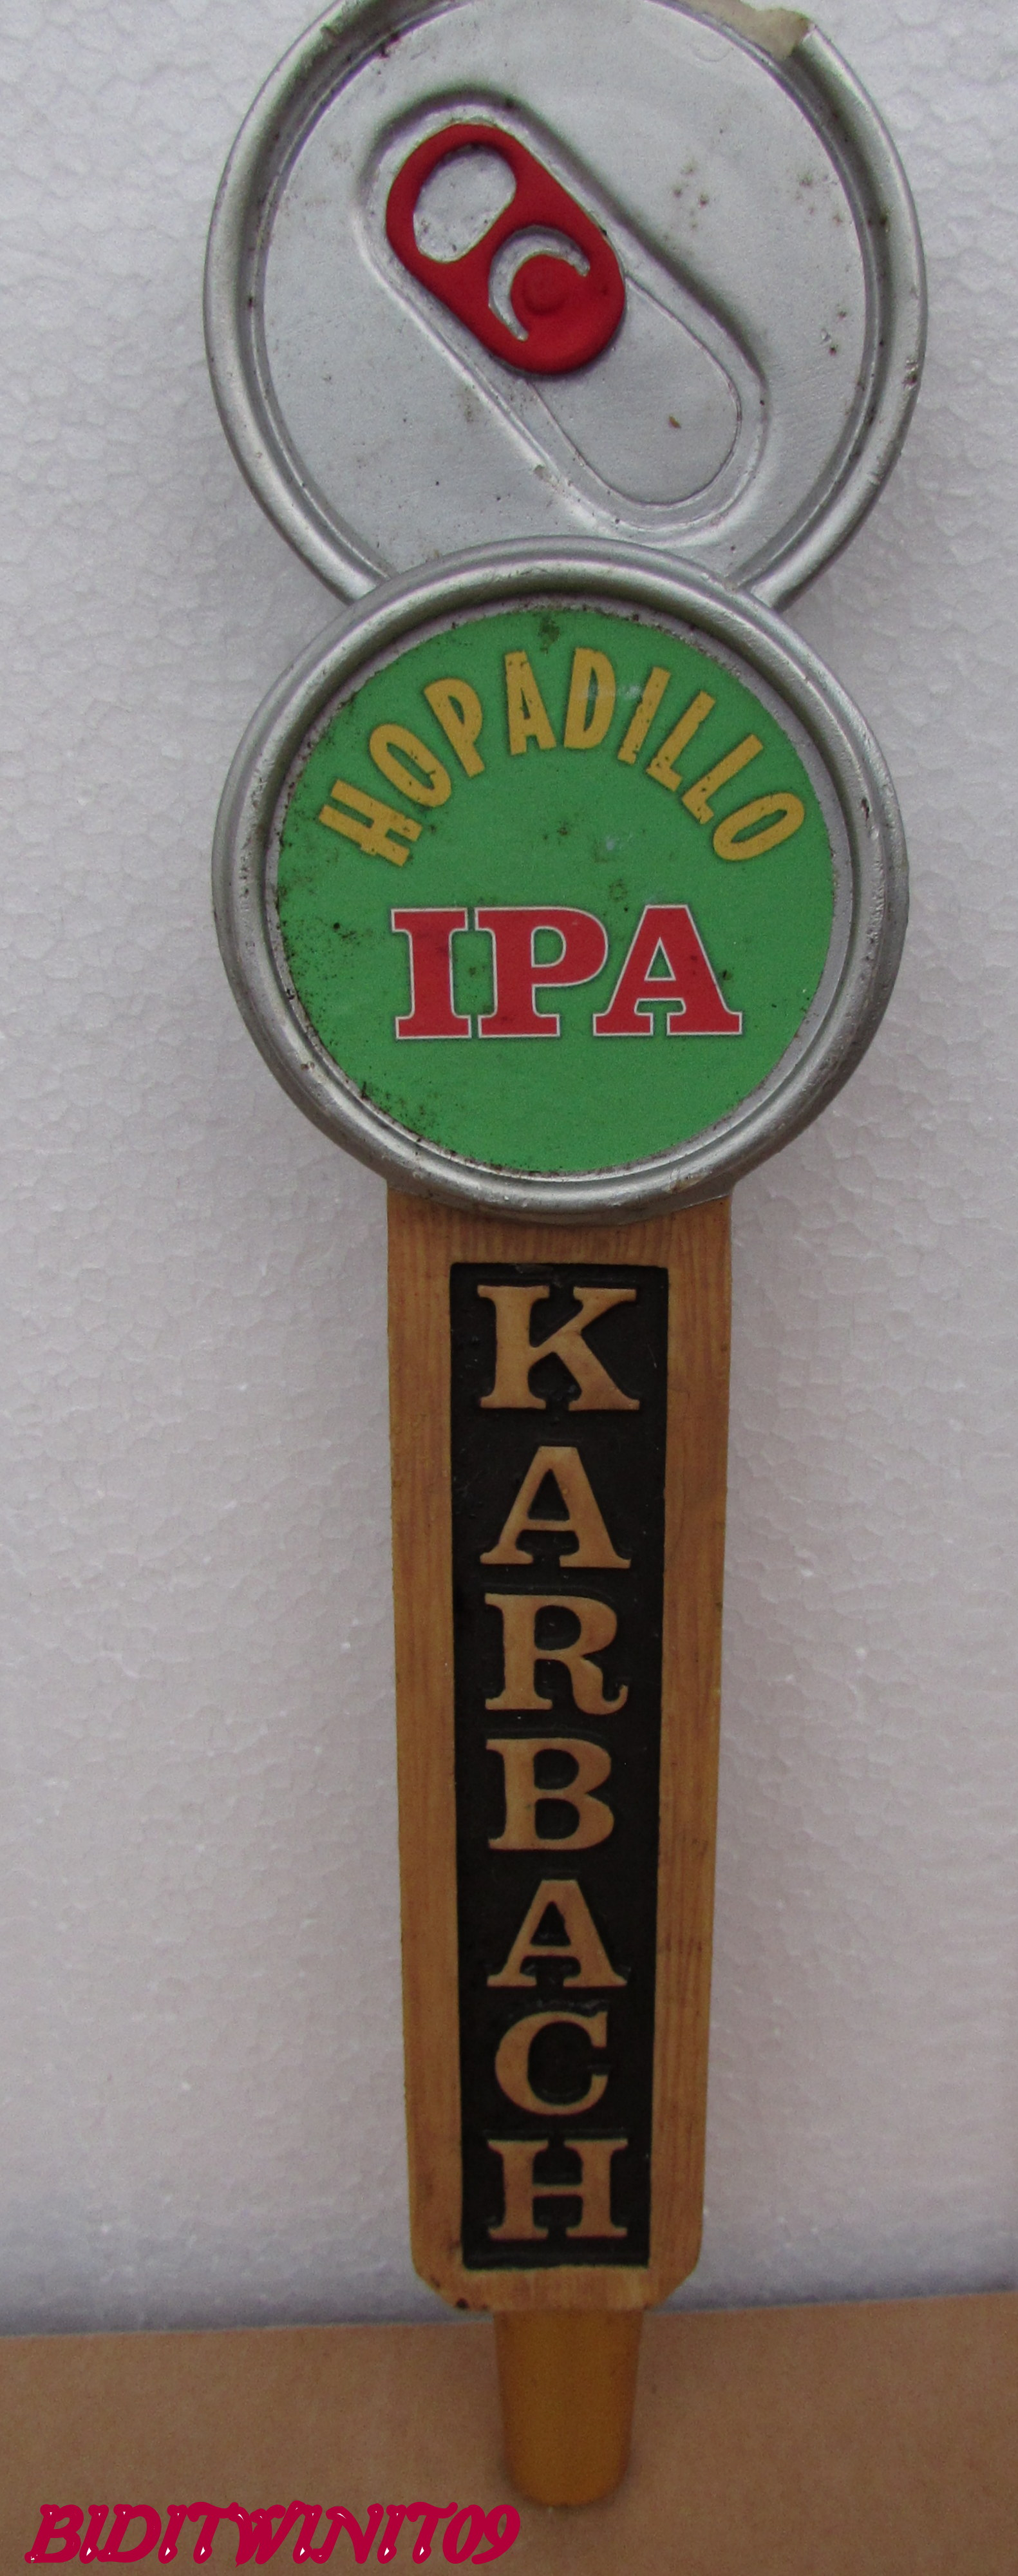 BEER TAP HANDLE KARBACH HOPADILLO IPA E+